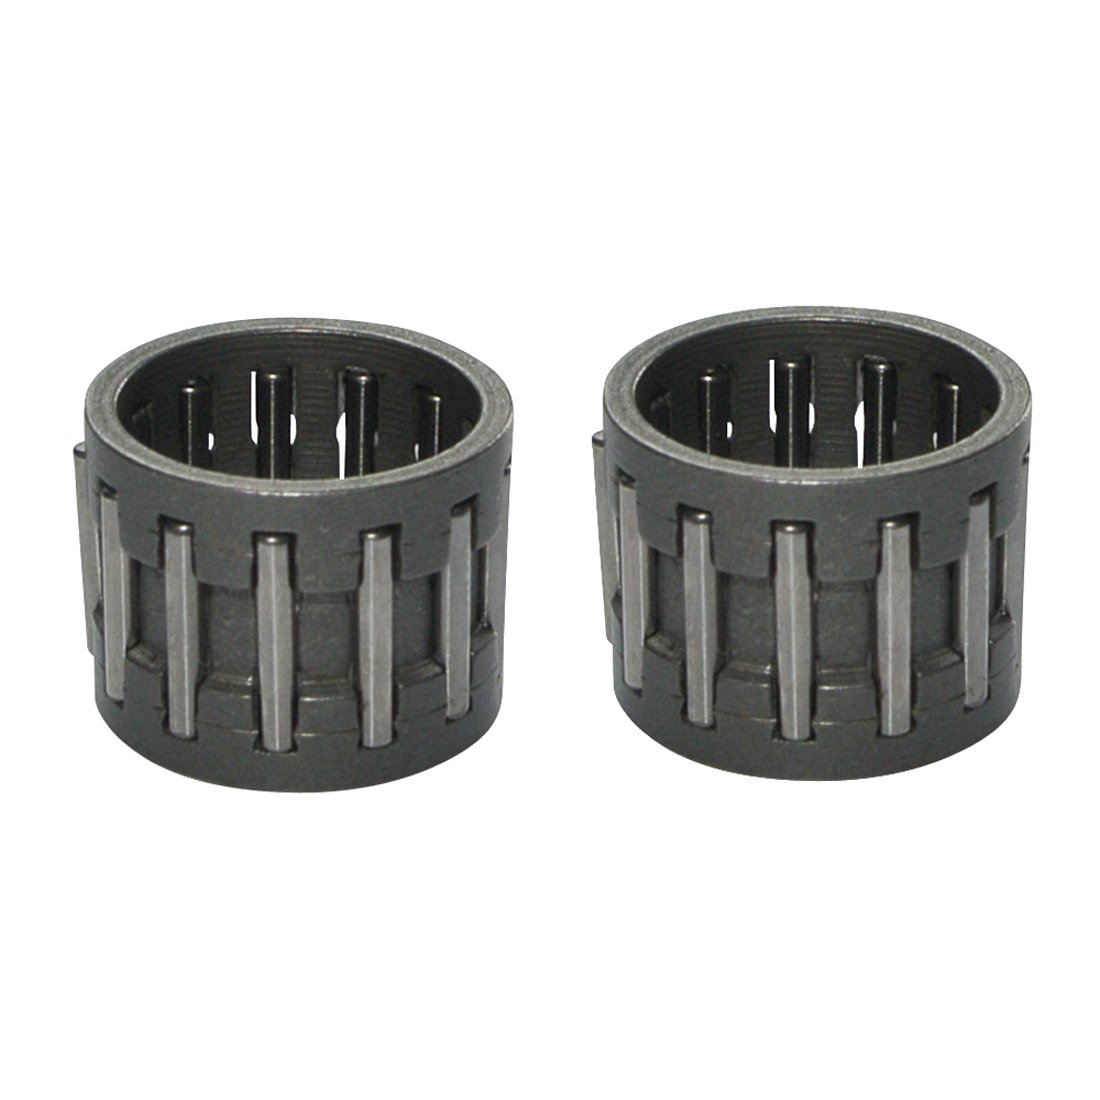 37-3041 3041 Rotary Recoil Spring Fits Jonsered 504-212606 450 455 510SP 520SP